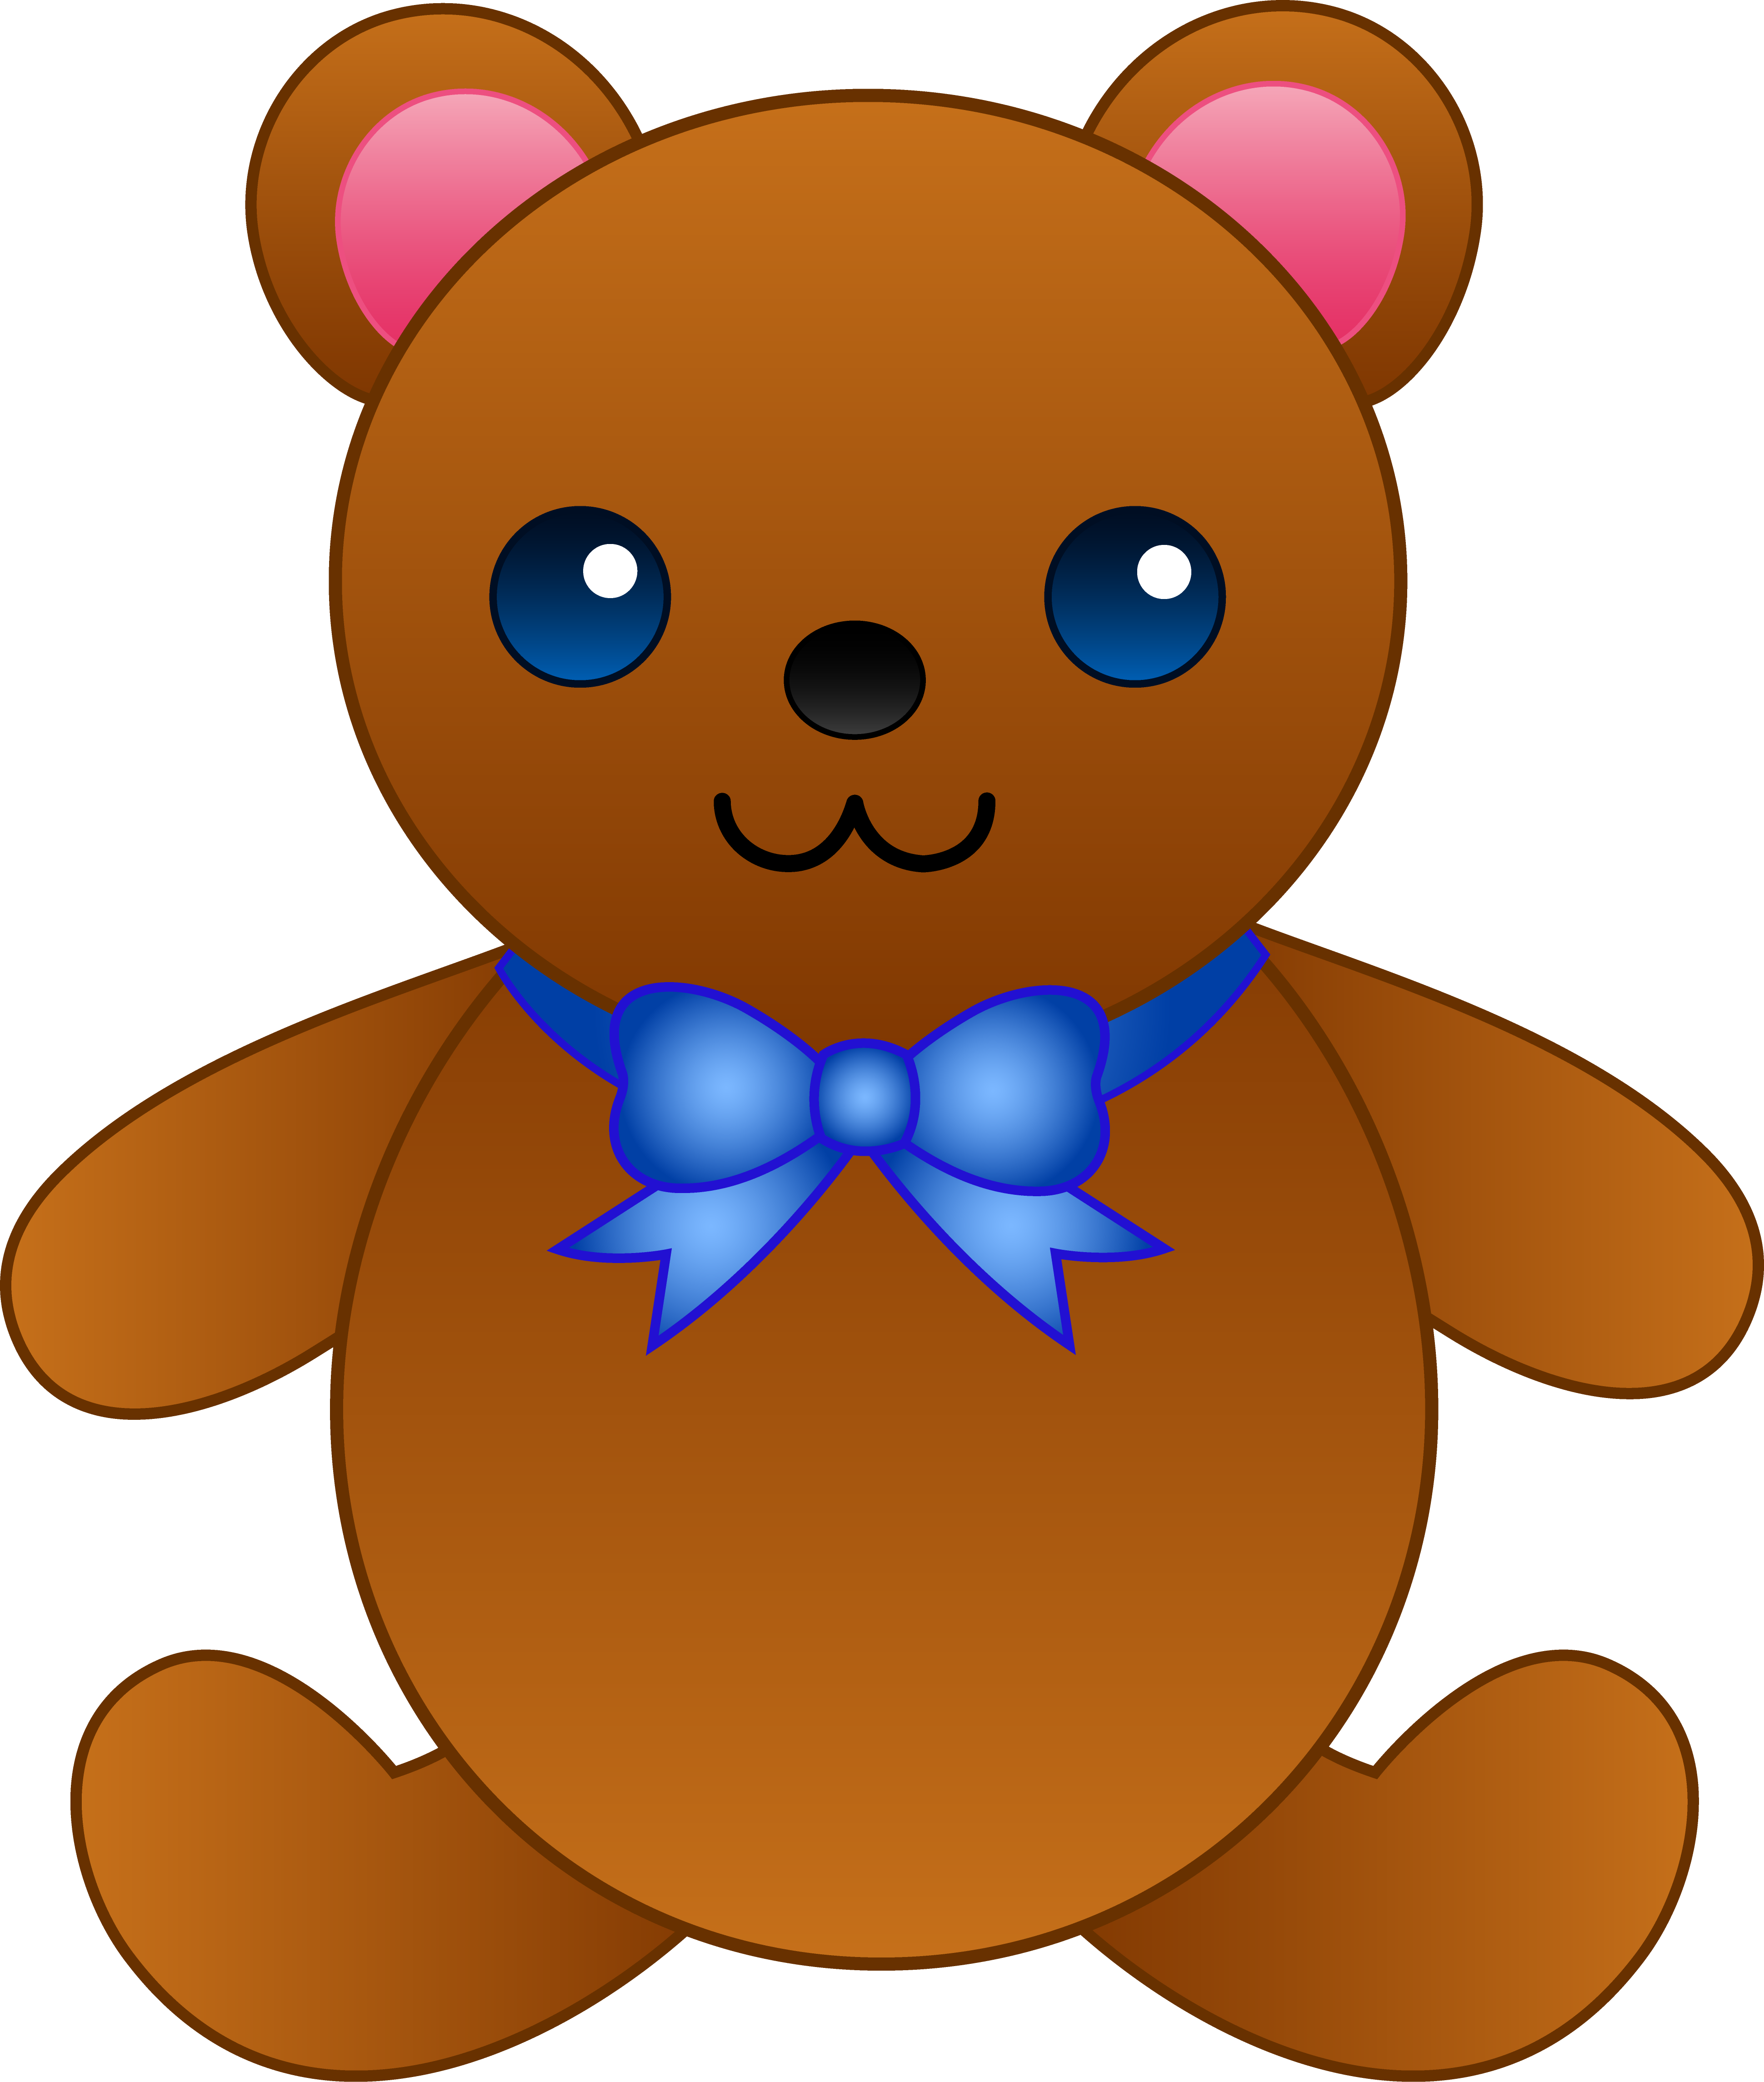 banner Clip art pictures clipartix. Teddy bear clipart free